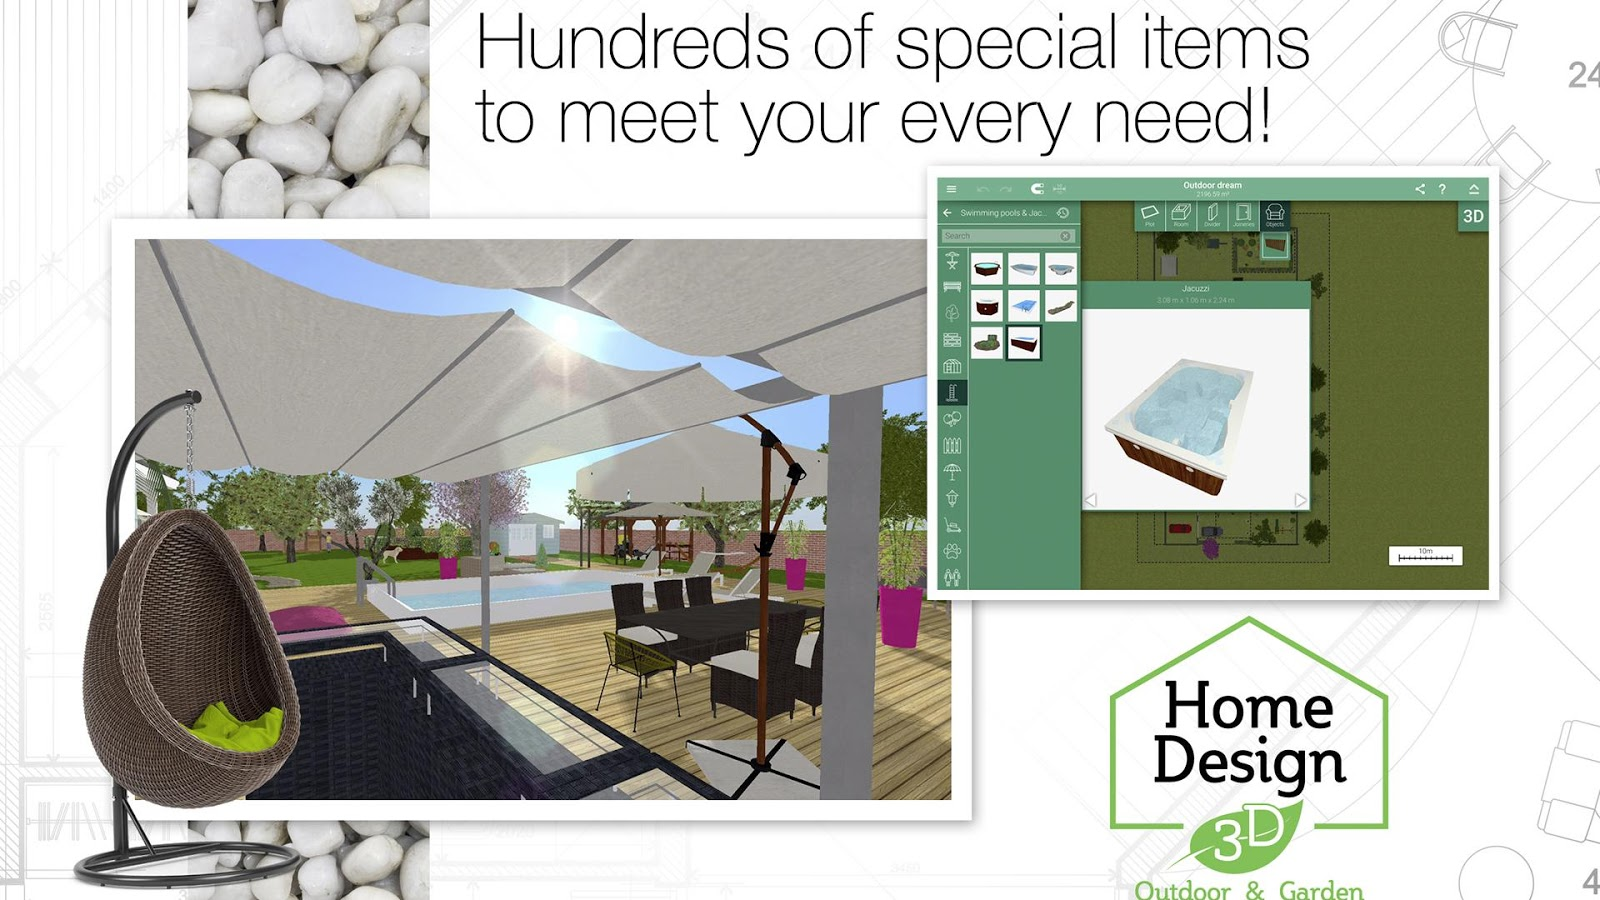 Home Design 3D OutdoorGardenAndroid Apps on Google Play